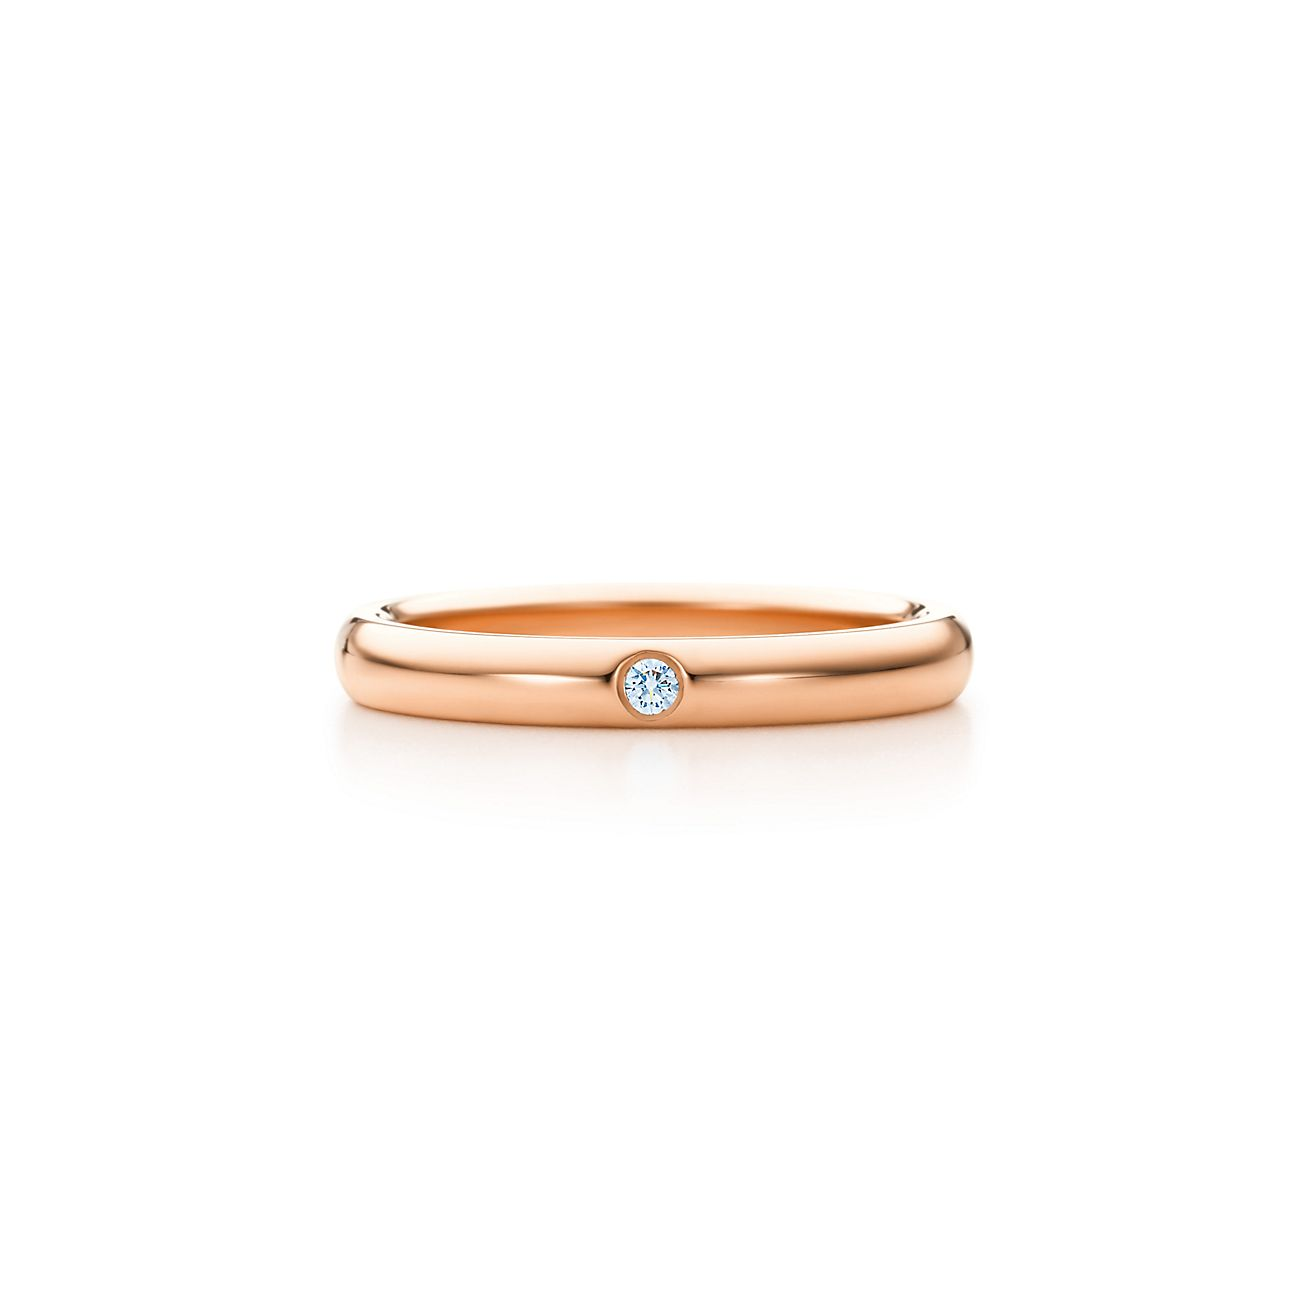 Elsa Peretti wedding band ring in 18k gold, 2 mm wide - Size 10 1/2 Tiffany & Co.